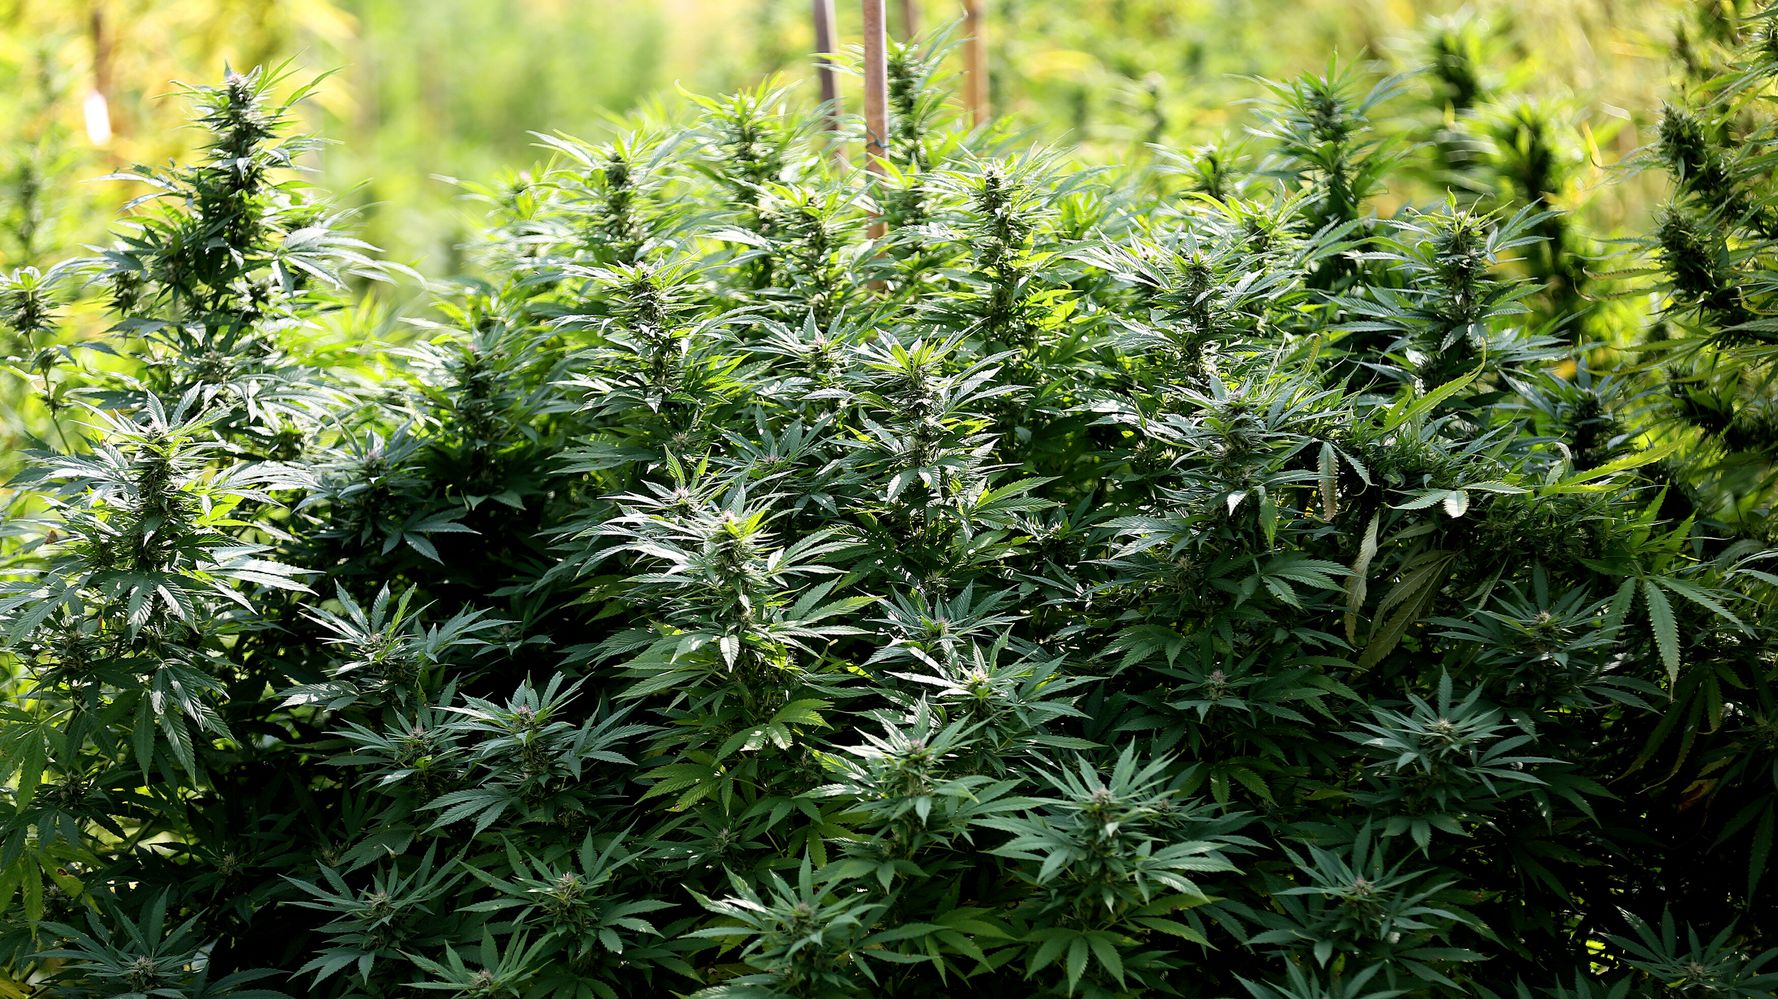 Growing Small Amounts Of Cannabis At Home Not Illegal, Italy's Supreme Court Rules